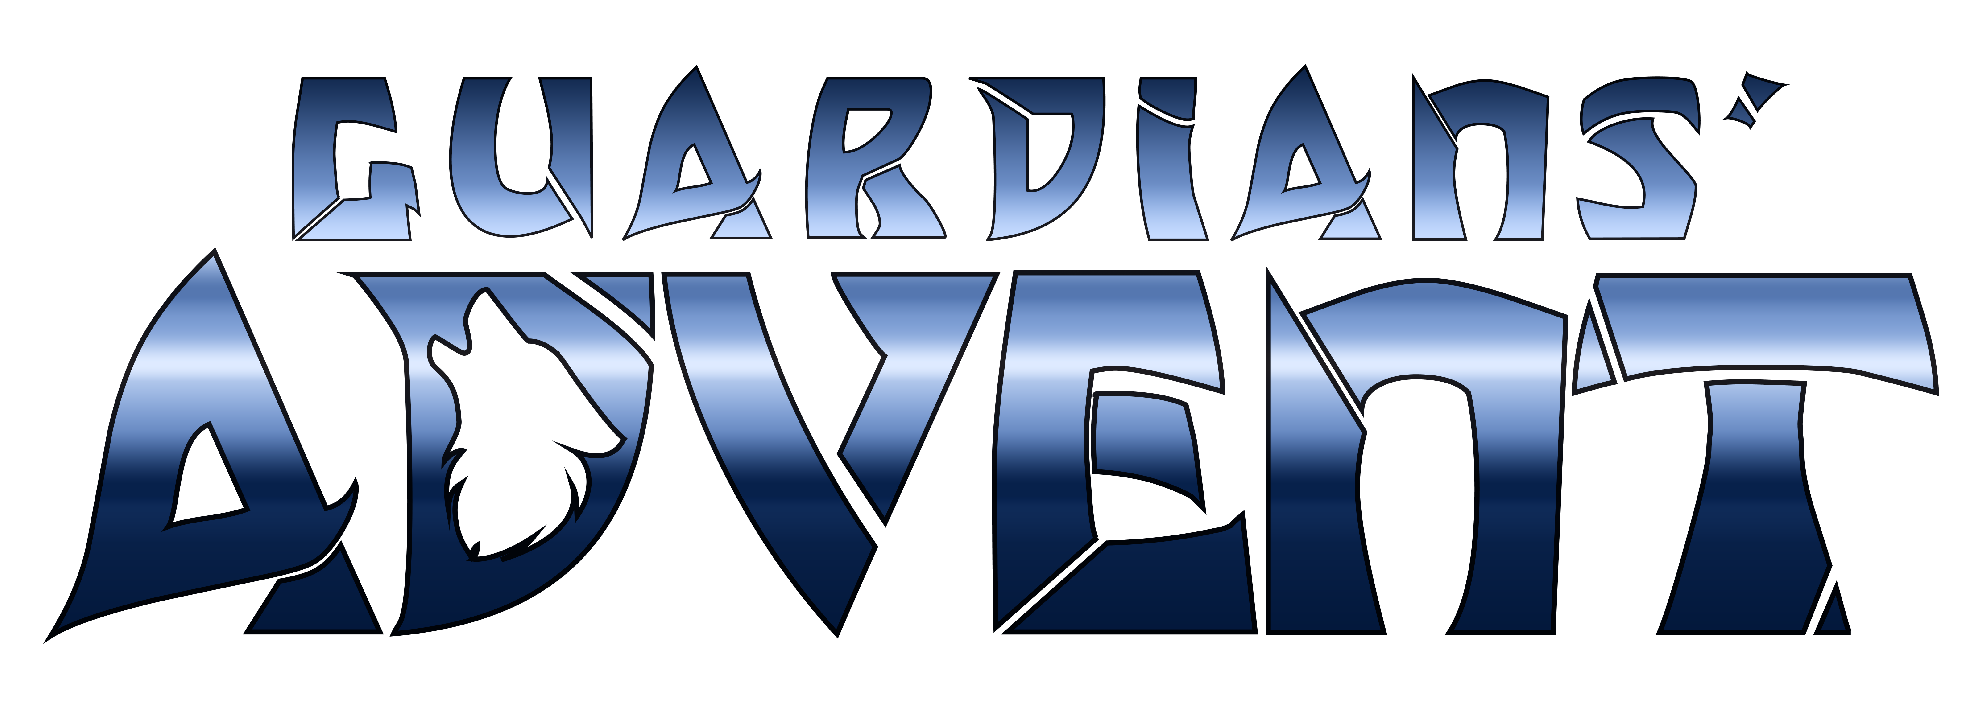 Guardians' Advent Logo - Blue Gradient Version #guardiansadvent